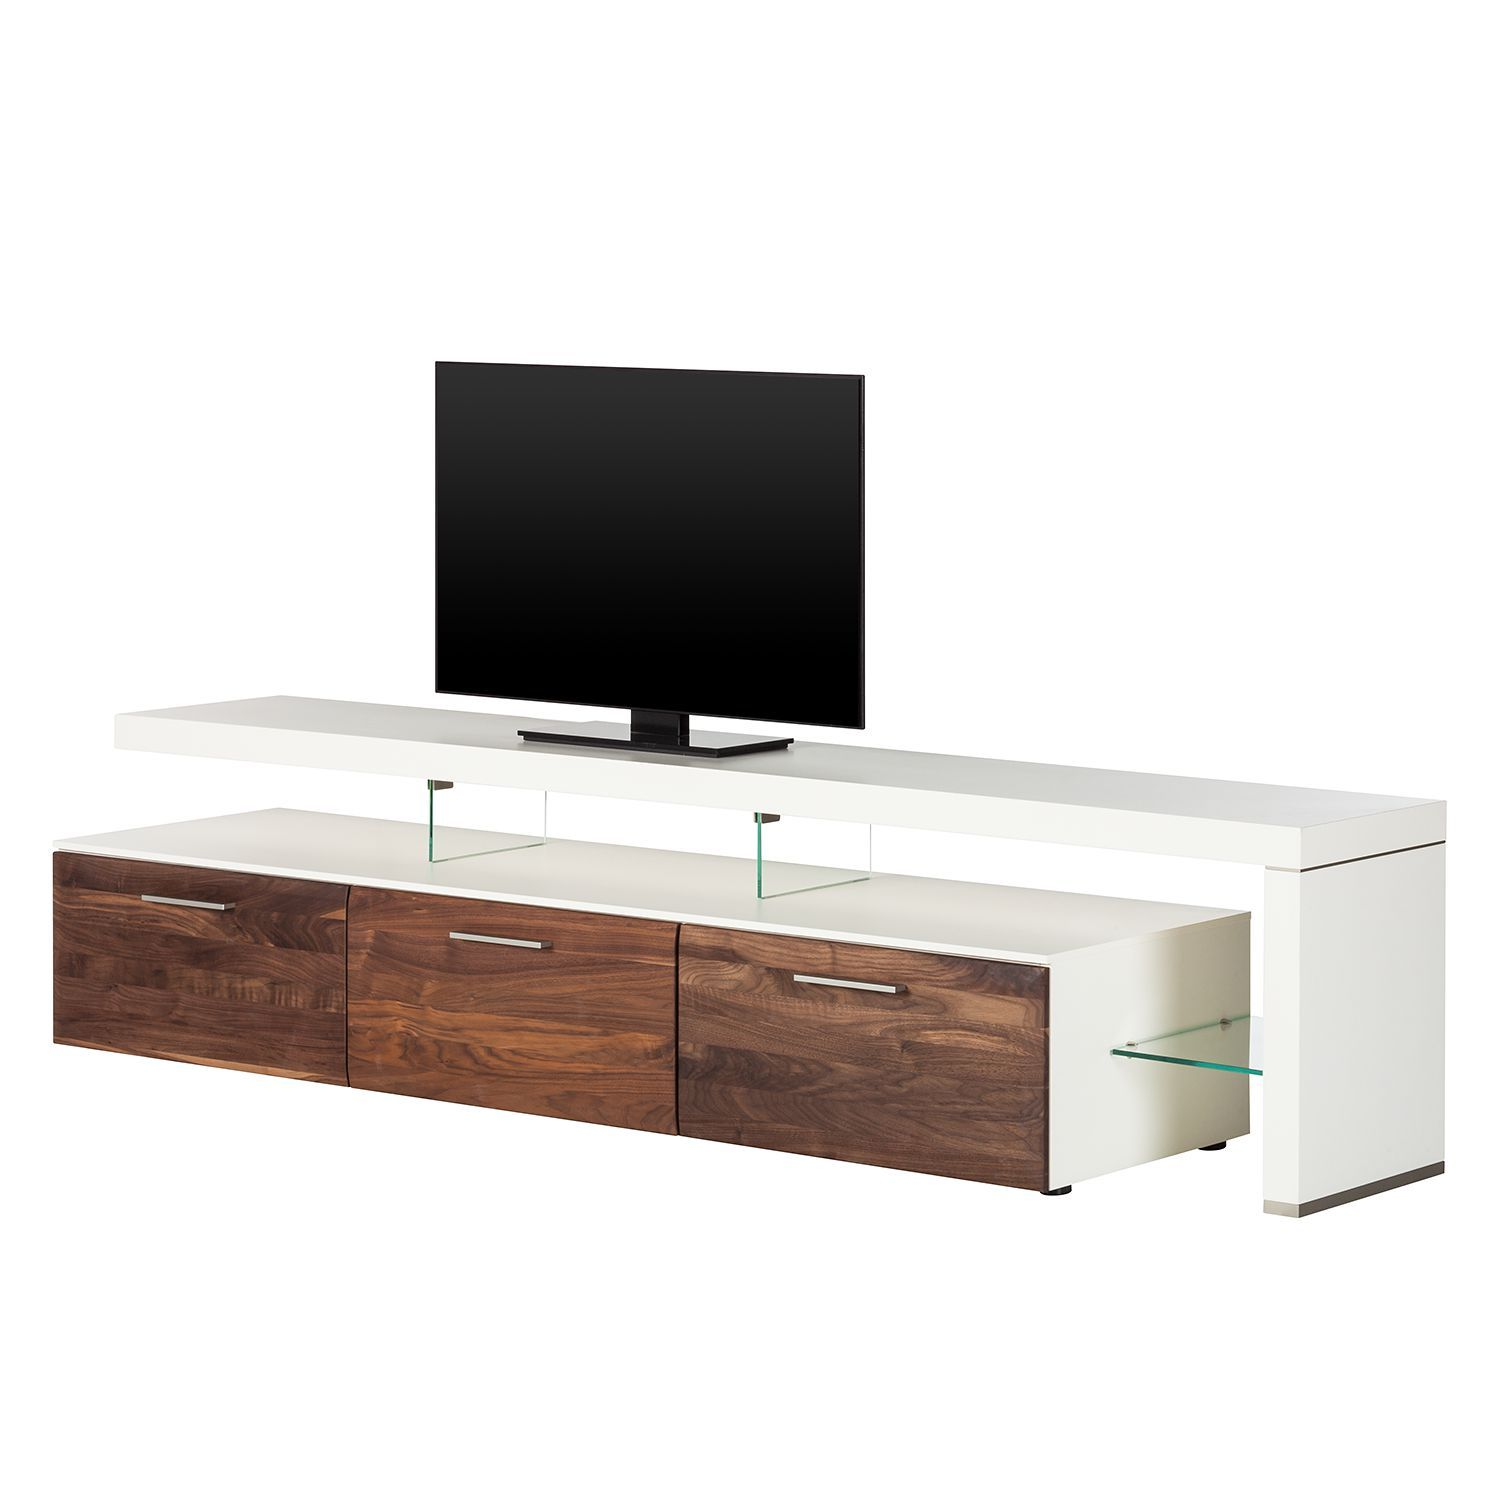 tv lowboard solano ii ohne beleuchtung nussbaum wei mit tv bank rechts jetzt bestellen. Black Bedroom Furniture Sets. Home Design Ideas